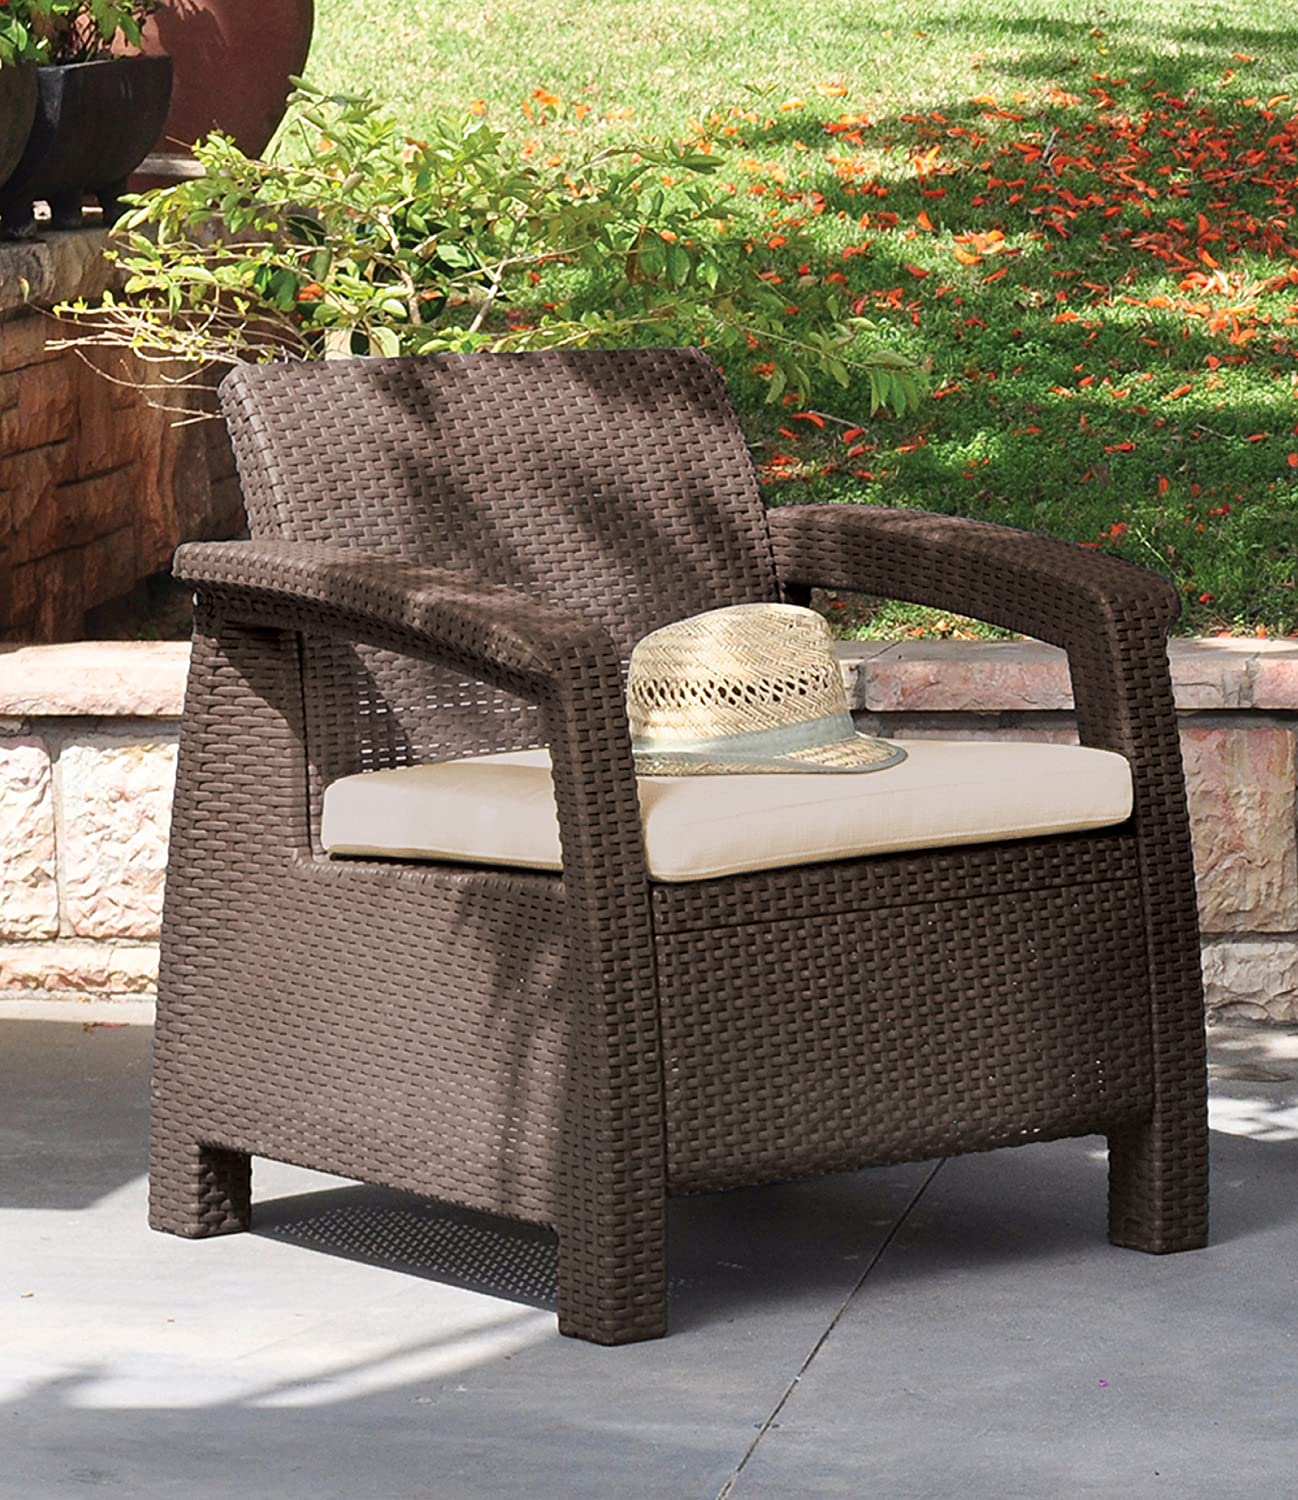 Exceptional Amazon.com : Keter Corfu Armchair All Weather Outdoor Patio Garden Furniture  With Cushions, Brown : Patio Lounge Chairs : Garden U0026 Outdoor Part 16